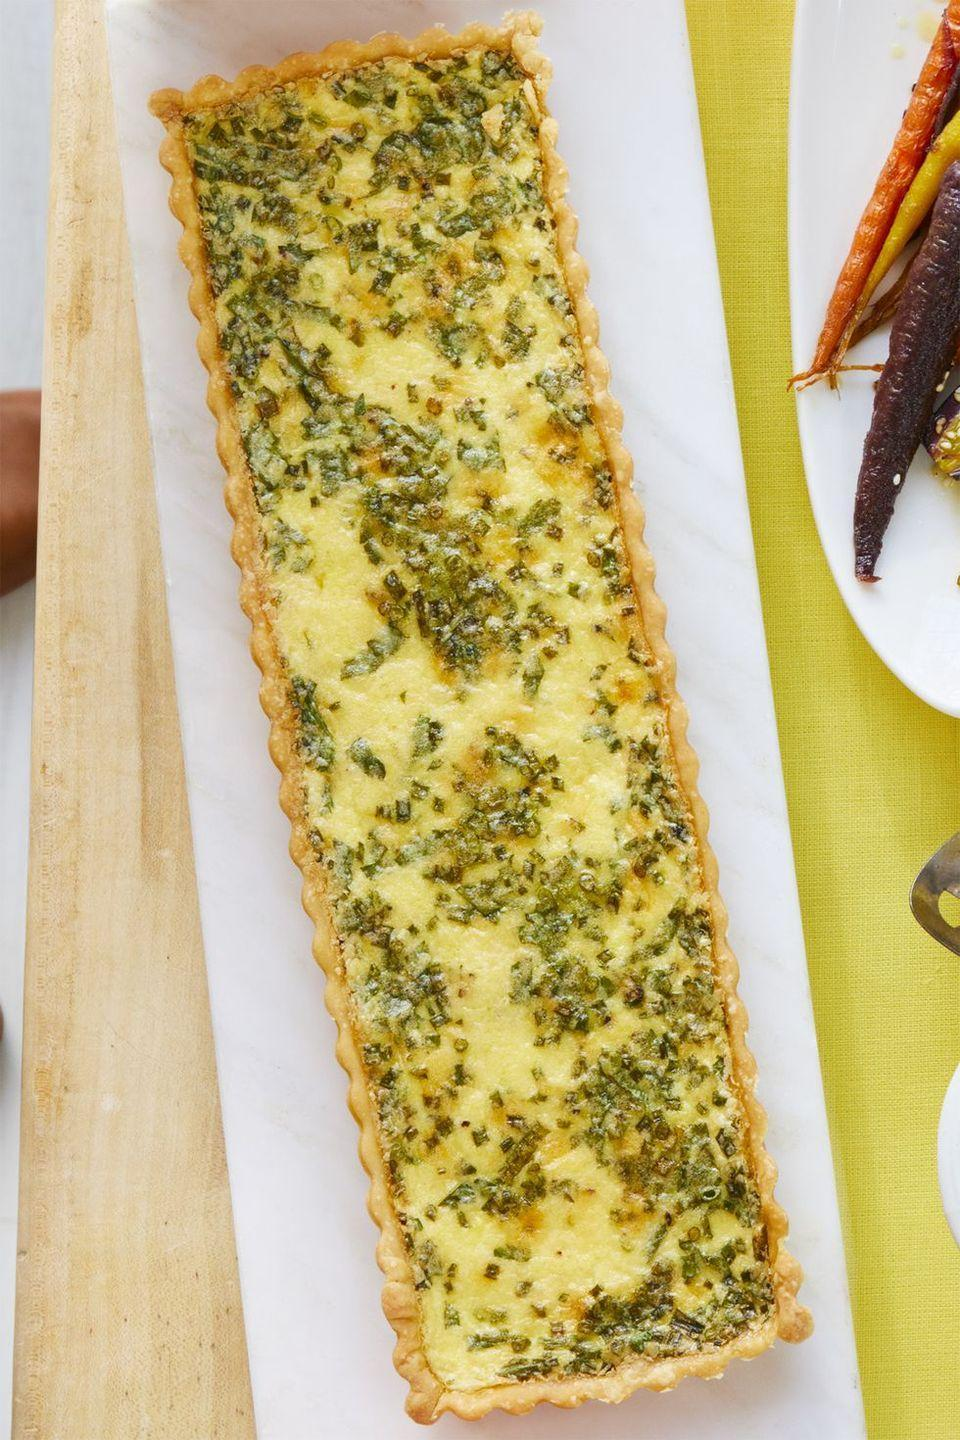 """<p>Frozen puff pastry, who? Make your own pie crust from scratch and then fill it with this cheesy egg mixture. </p><p><a class=""""link rapid-noclick-resp"""" href=""""https://www.amazon.com/Gobel-Rectangular-Tart-Pan-14/dp/B00004S1BW?tag=syn-yahoo-20&ascsubtag=%5Bartid%7C10055.g.428%5Bsrc%7Cyahoo-us"""" rel=""""nofollow noopener"""" target=""""_blank"""" data-ylk=""""slk:SHOP RECTANGULAR TART PANS"""">SHOP RECTANGULAR TART PANS</a></p><p><em><a href=""""https://www.womansday.com/food-recipes/food-drinks/a19122269/cheese-and-herb-quiche-recipe/"""" rel=""""nofollow noopener"""" target=""""_blank"""" data-ylk=""""slk:Get the recipe from Woman's Day »"""" class=""""link rapid-noclick-resp"""">Get the recipe from Woman's Day »</a></em></p>"""